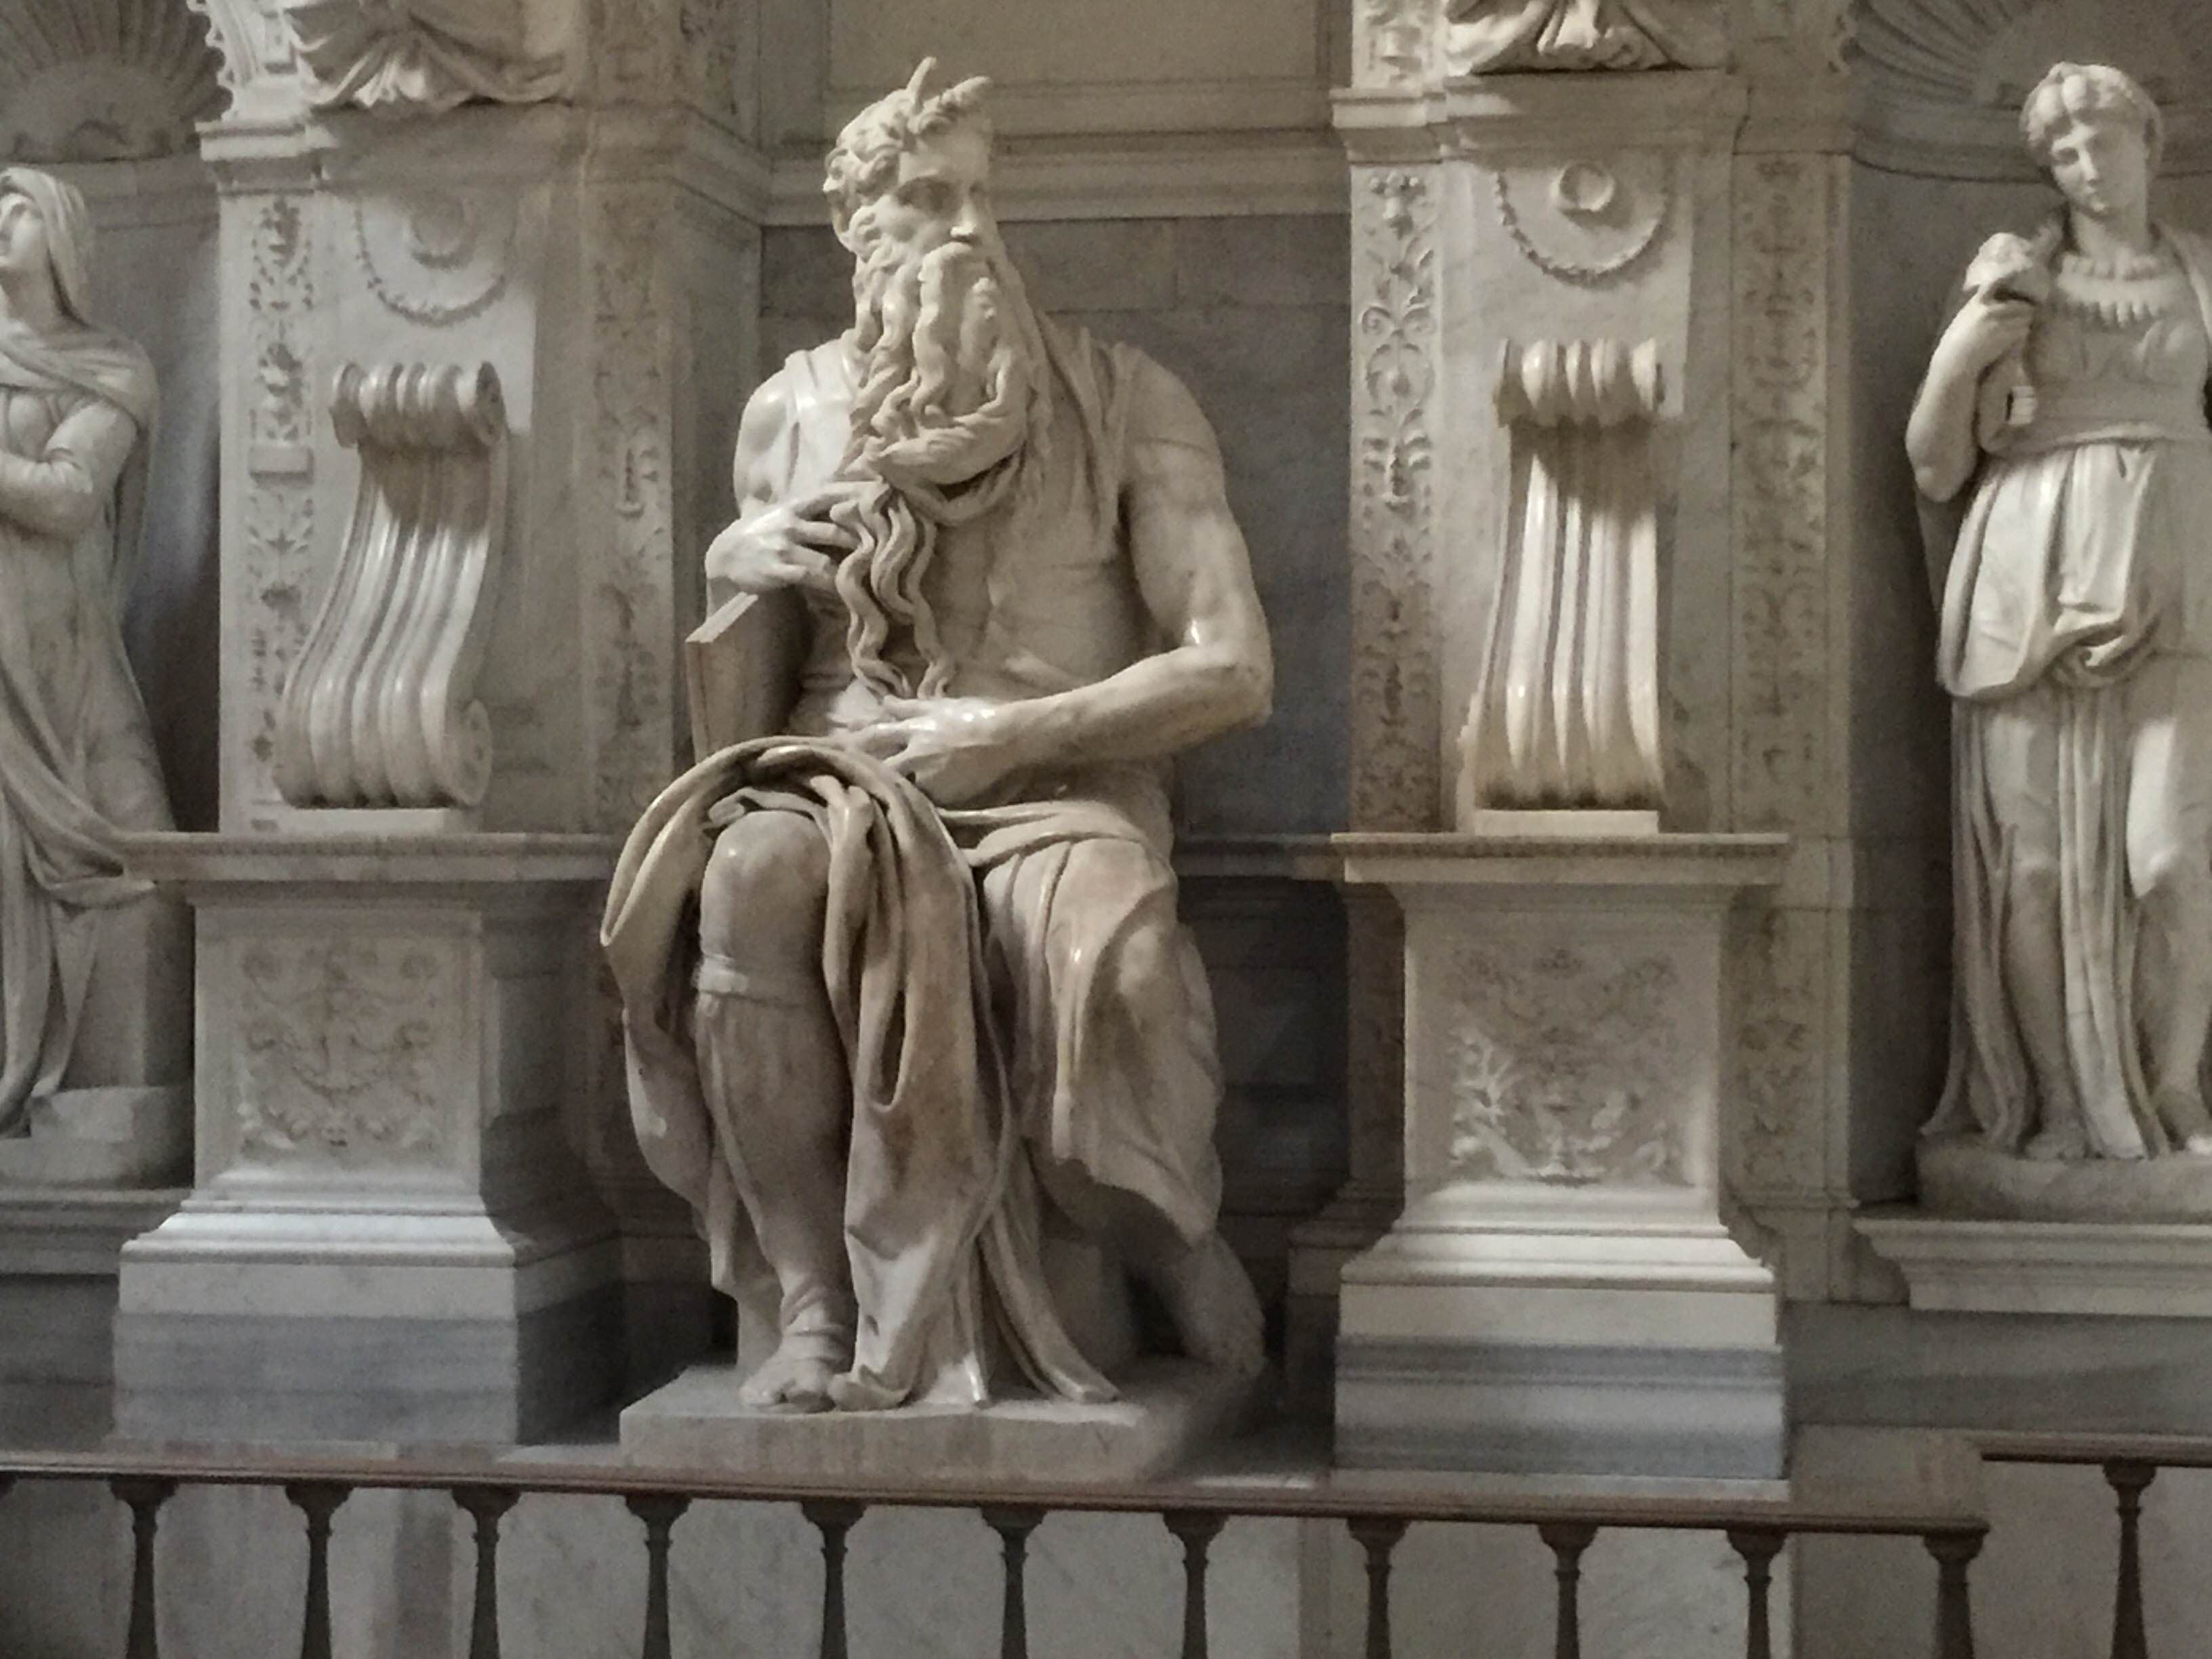 Classical Sculpture in Piazza di San Pietro in Vincoli